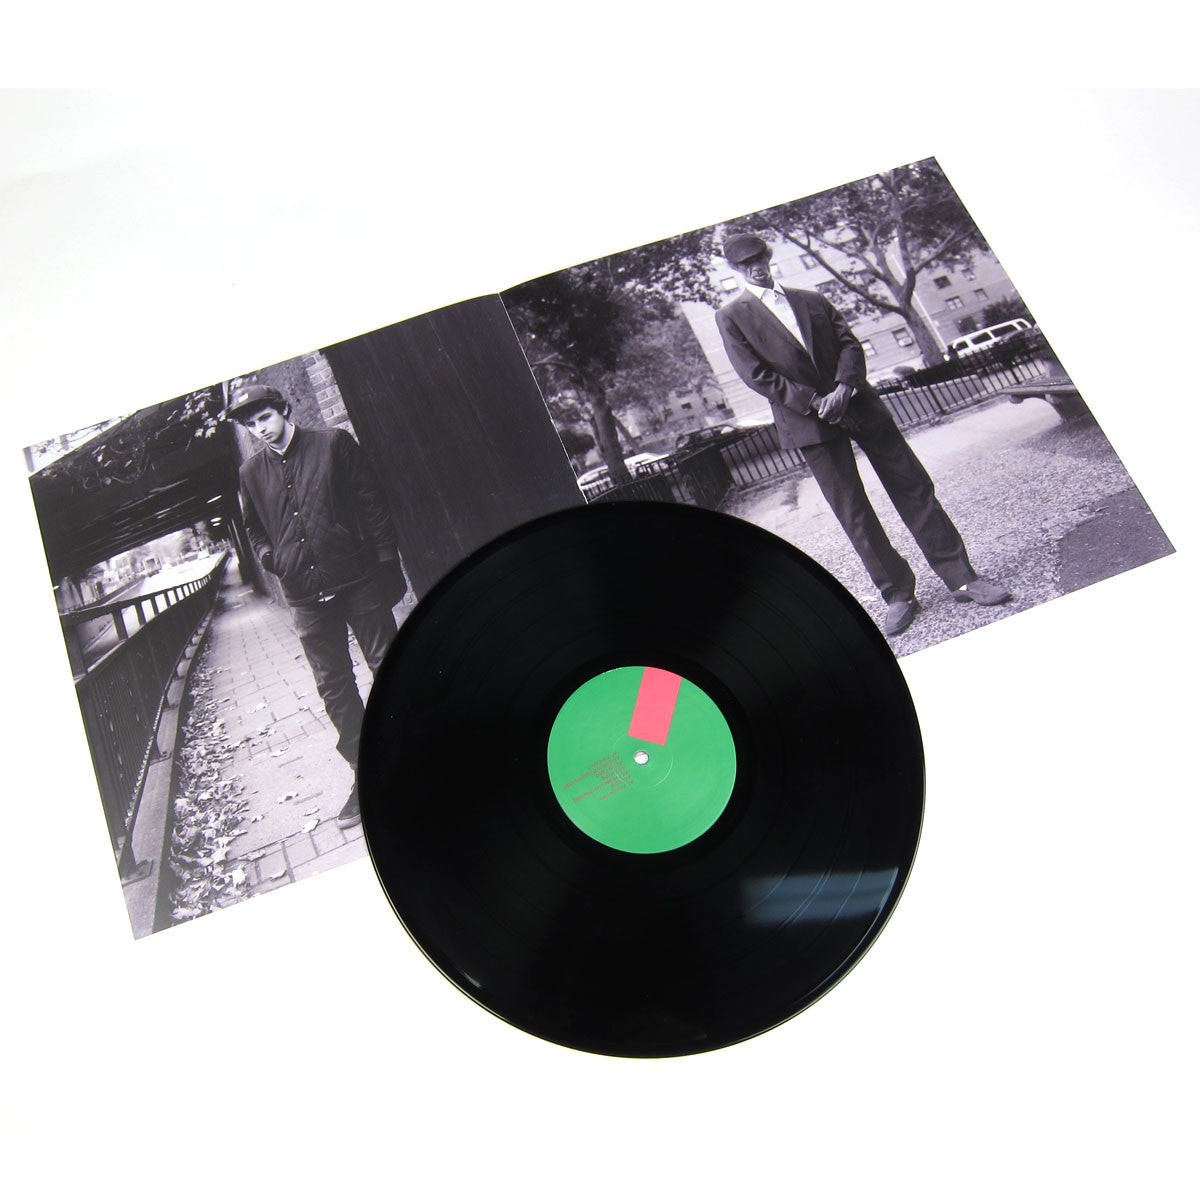 Gil Scott-Heron & Jamie XX: We're New Here Vinyl LP fold out